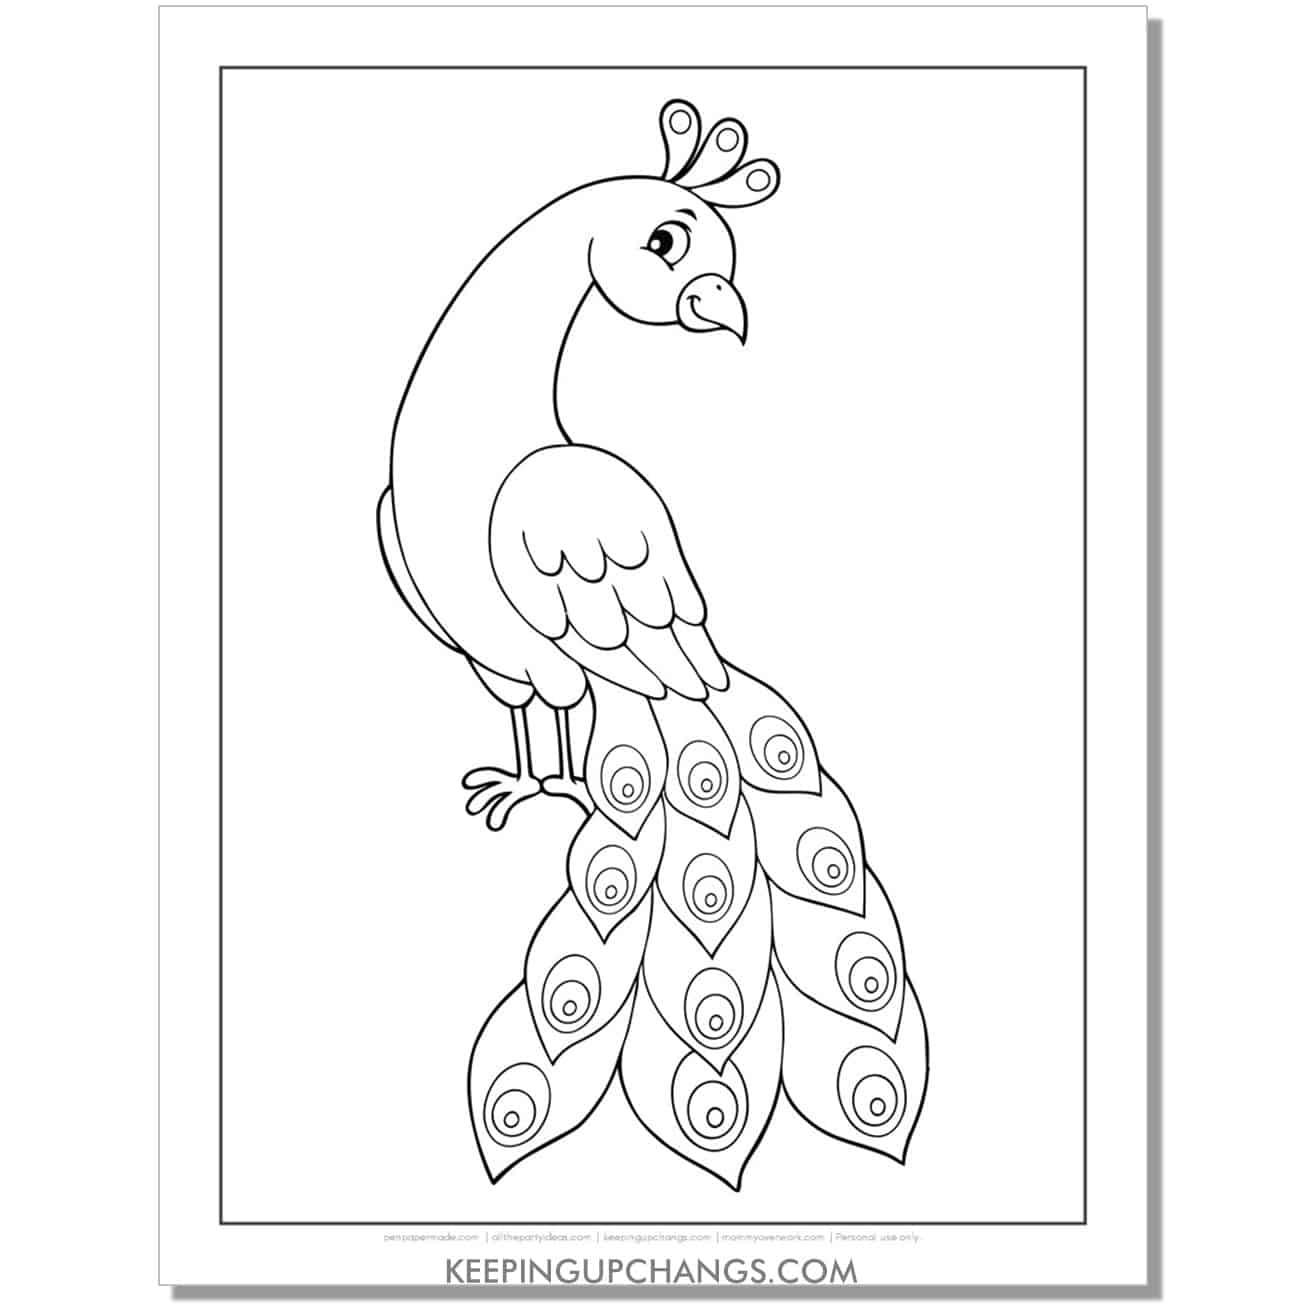 easy, simple peacock coloring page.